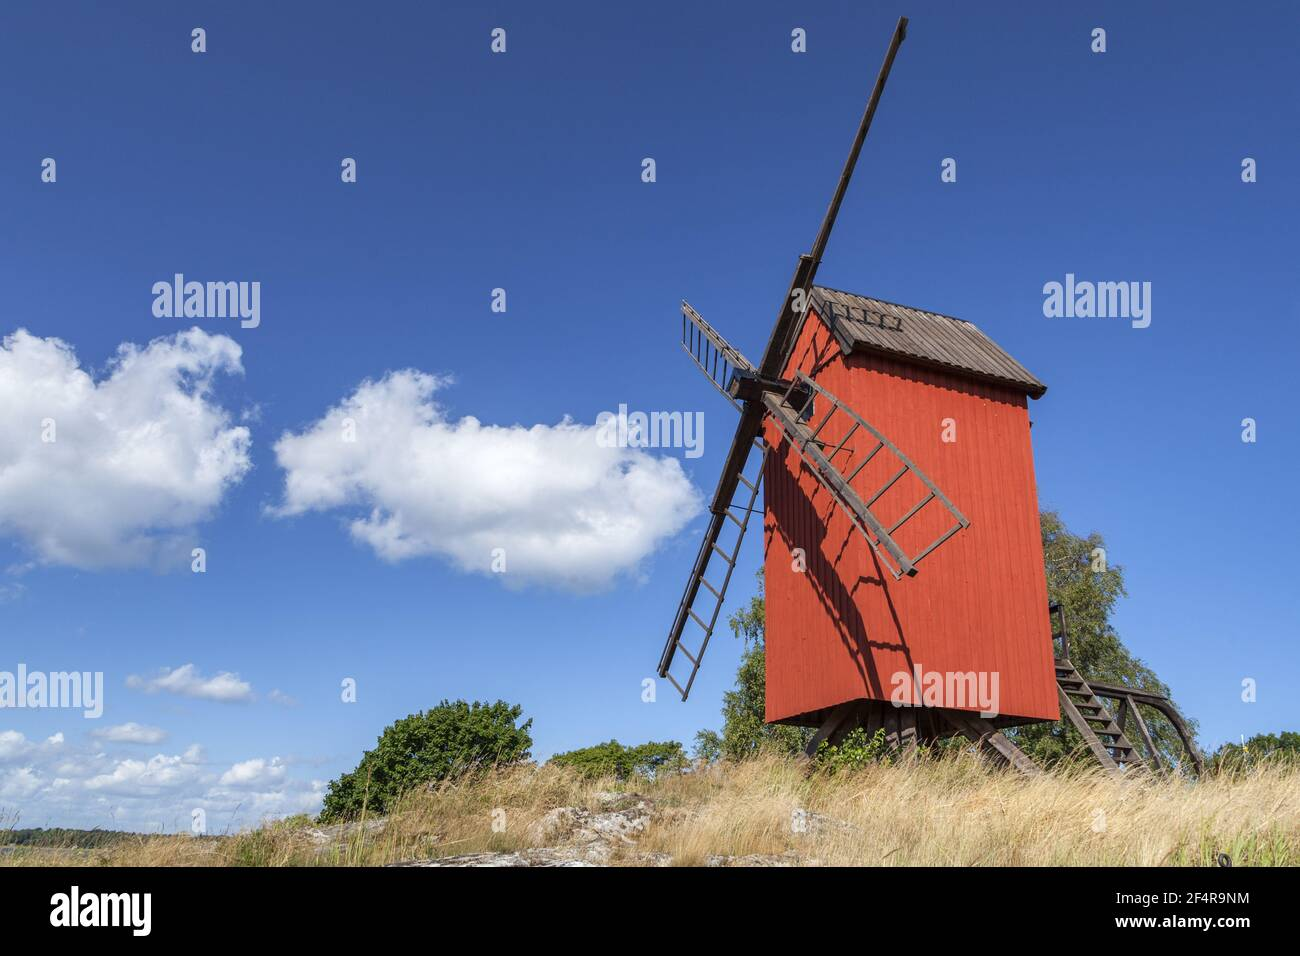 geography / travel, Sweden, Stockholm laen, isle Lidoe, red post mill on the isle Lidoe, Northern sker, Additional-Rights-Clearance-Info-Not-Available Stock Photo